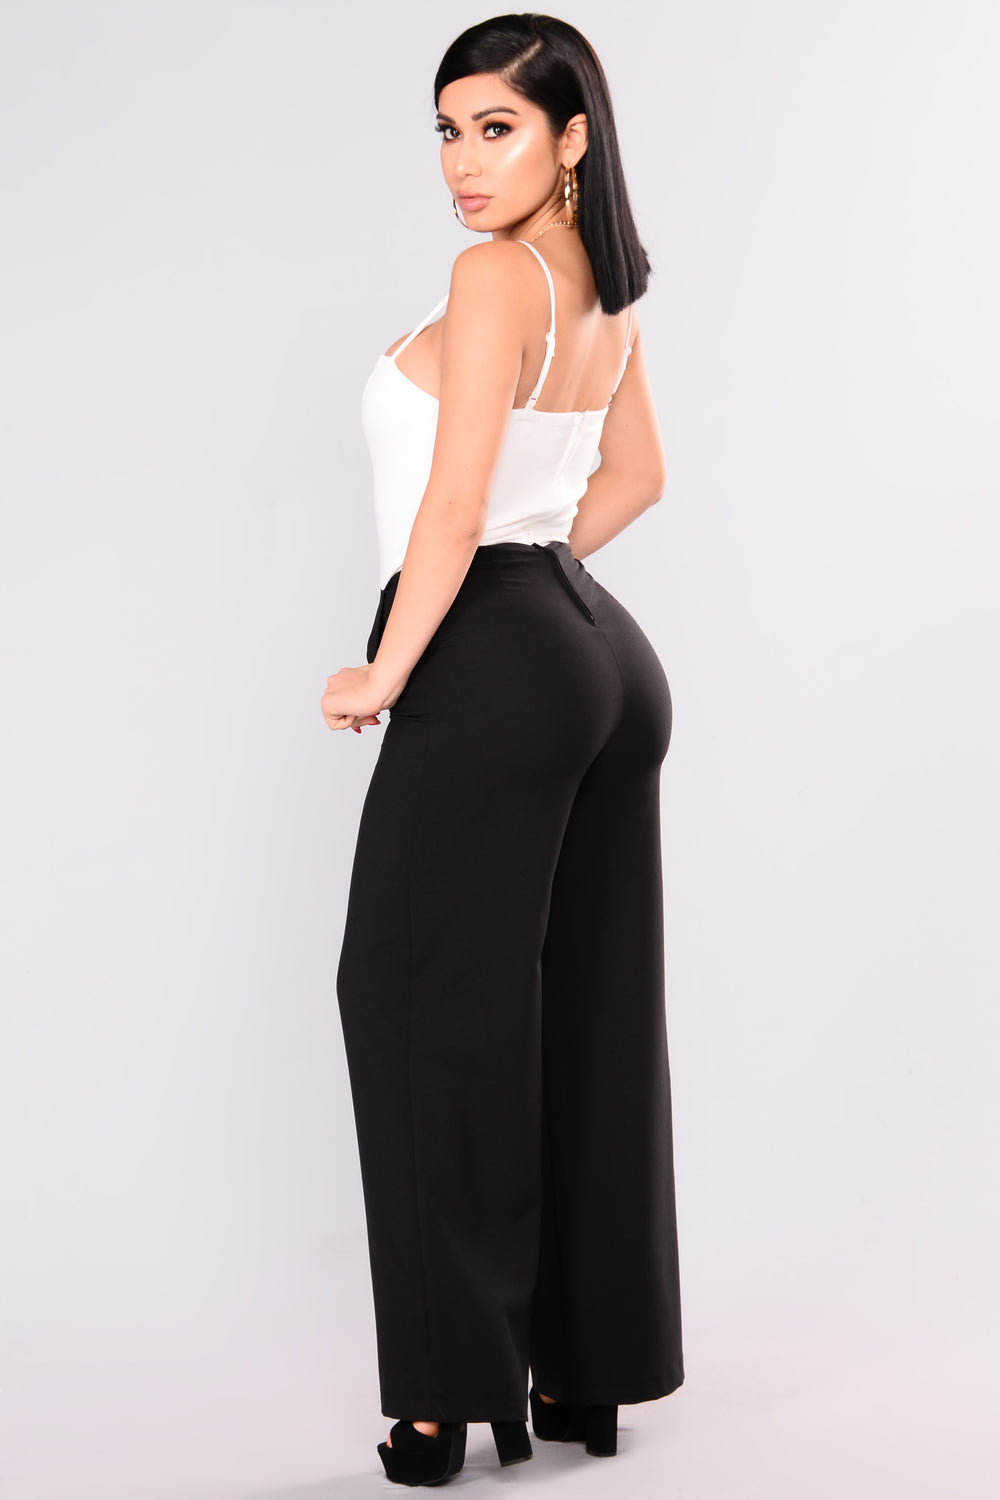 Fashion Nova Canada Shipping Company